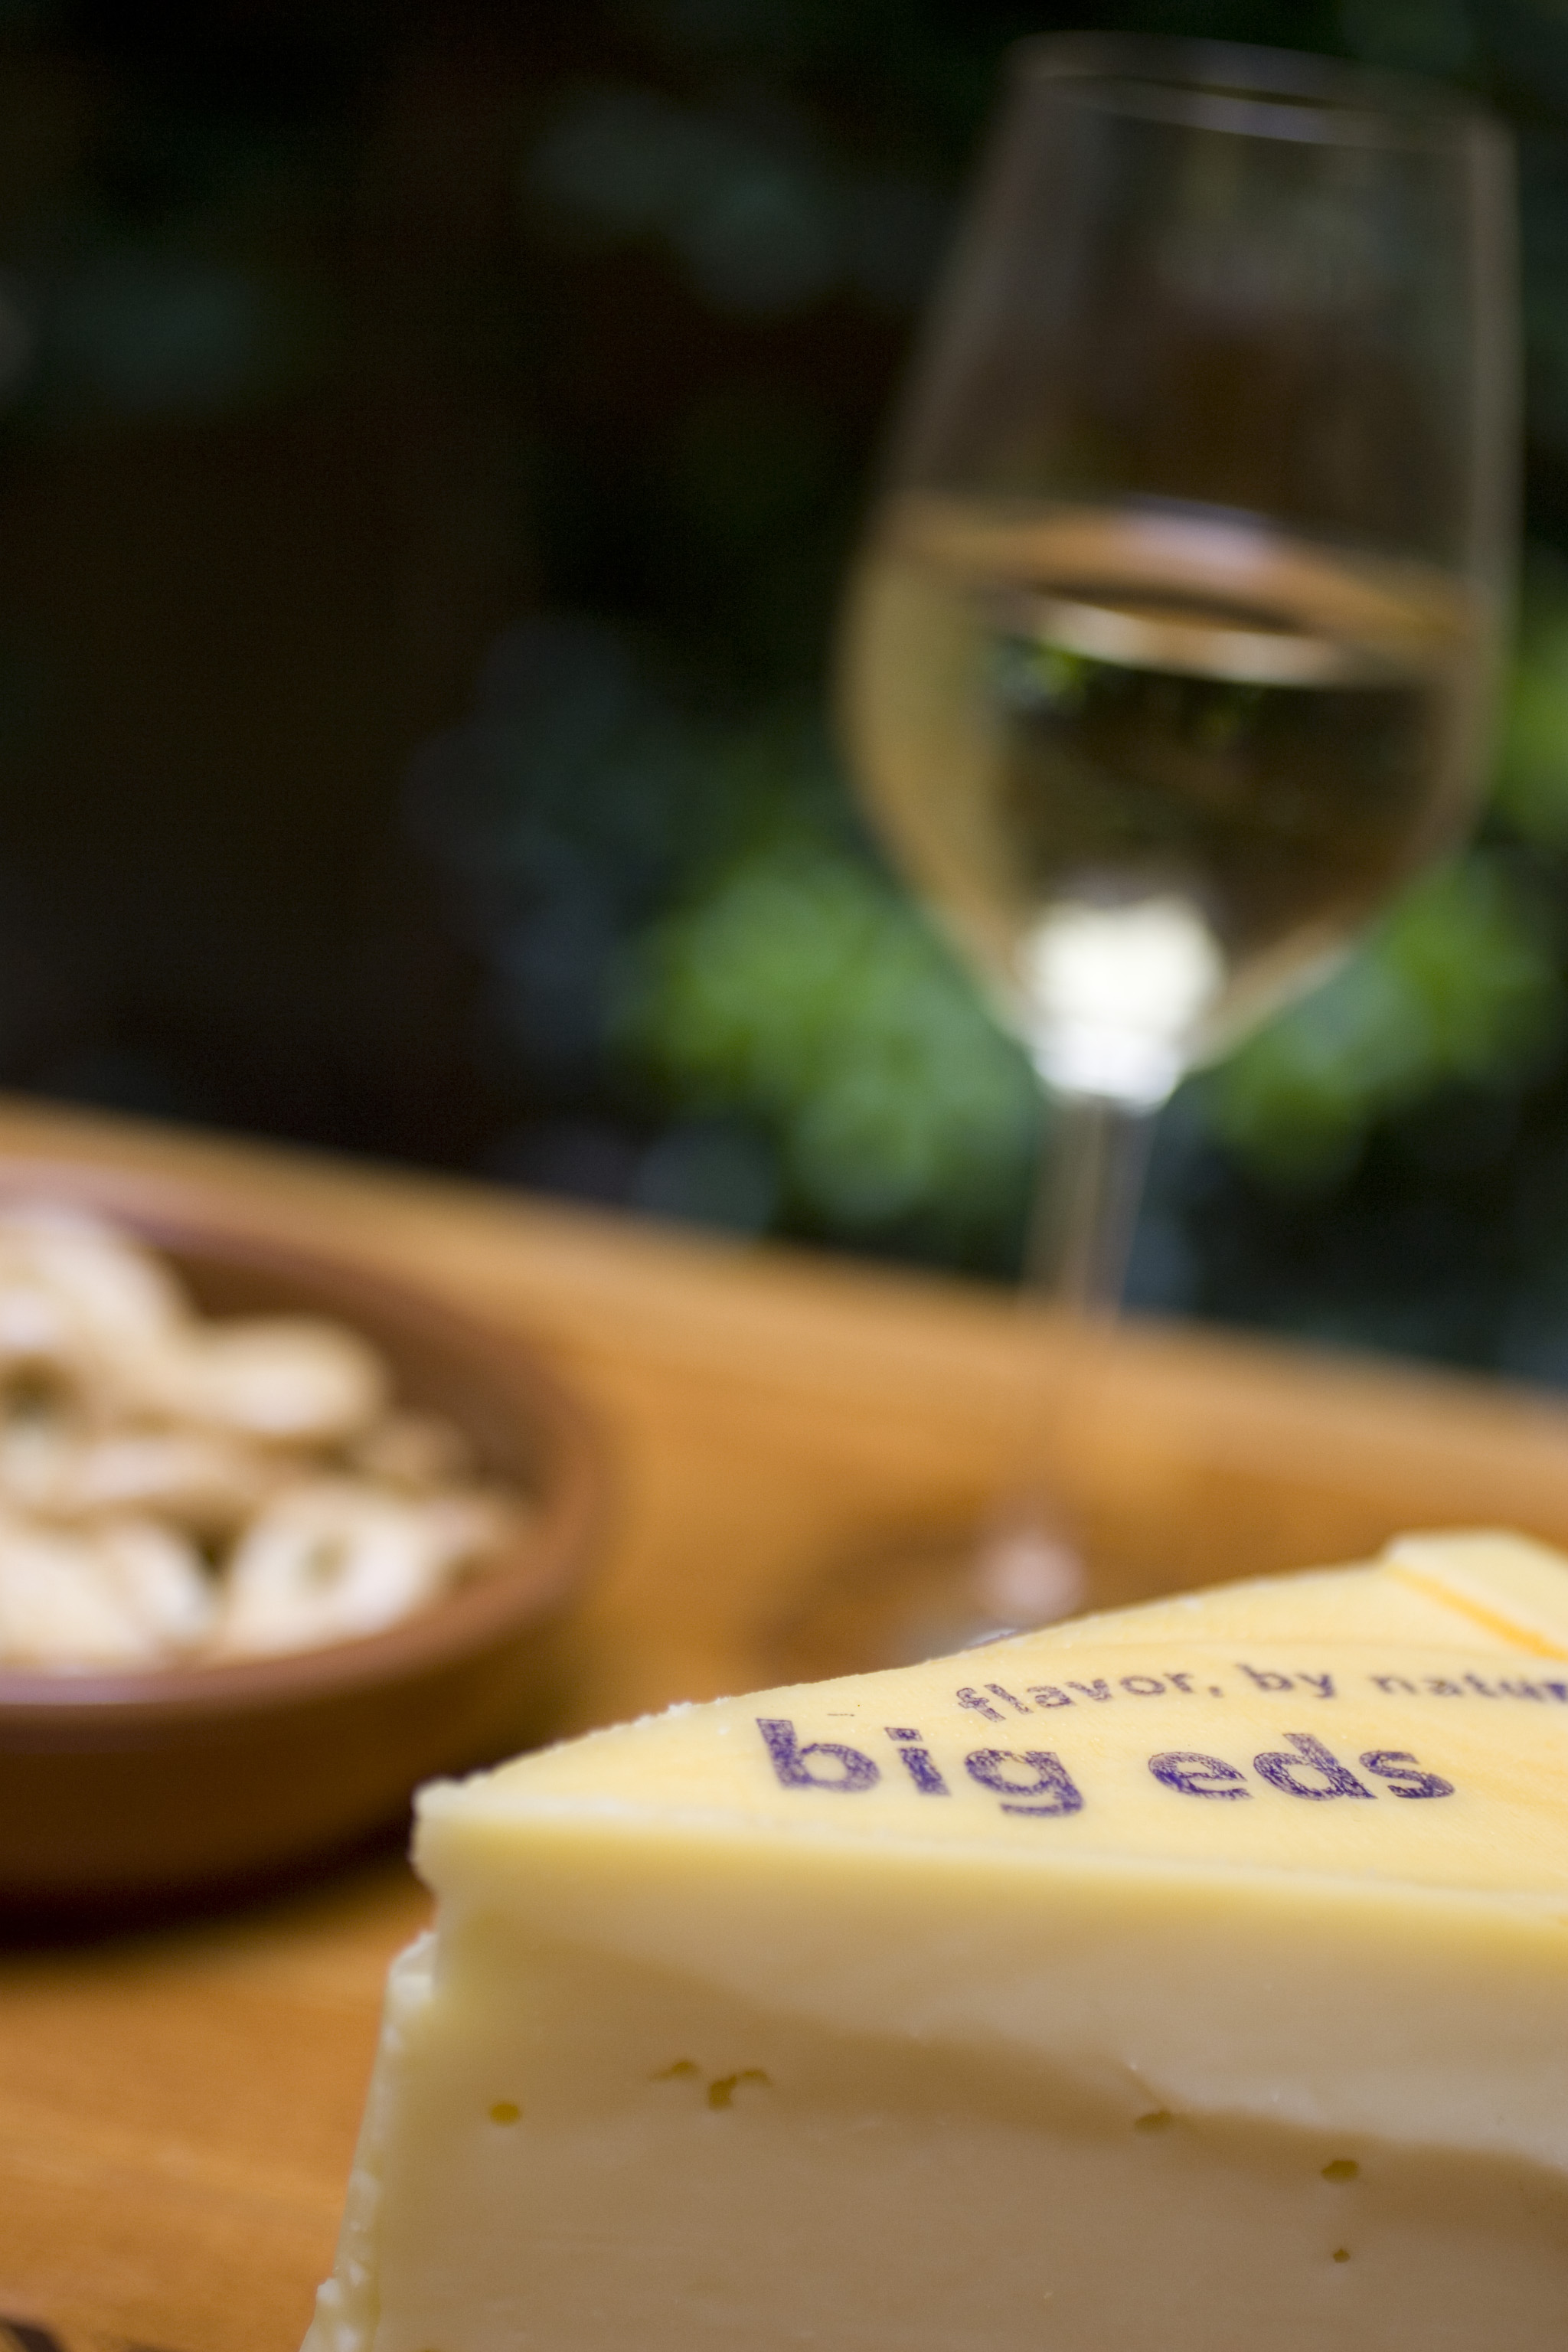 Big Ed's: A farm style Gouda, young, mild, but full of flavor, with a buttery body. Enthusiastic, like Ed Klessig, whom it was named after, it hugs you back but never offends.